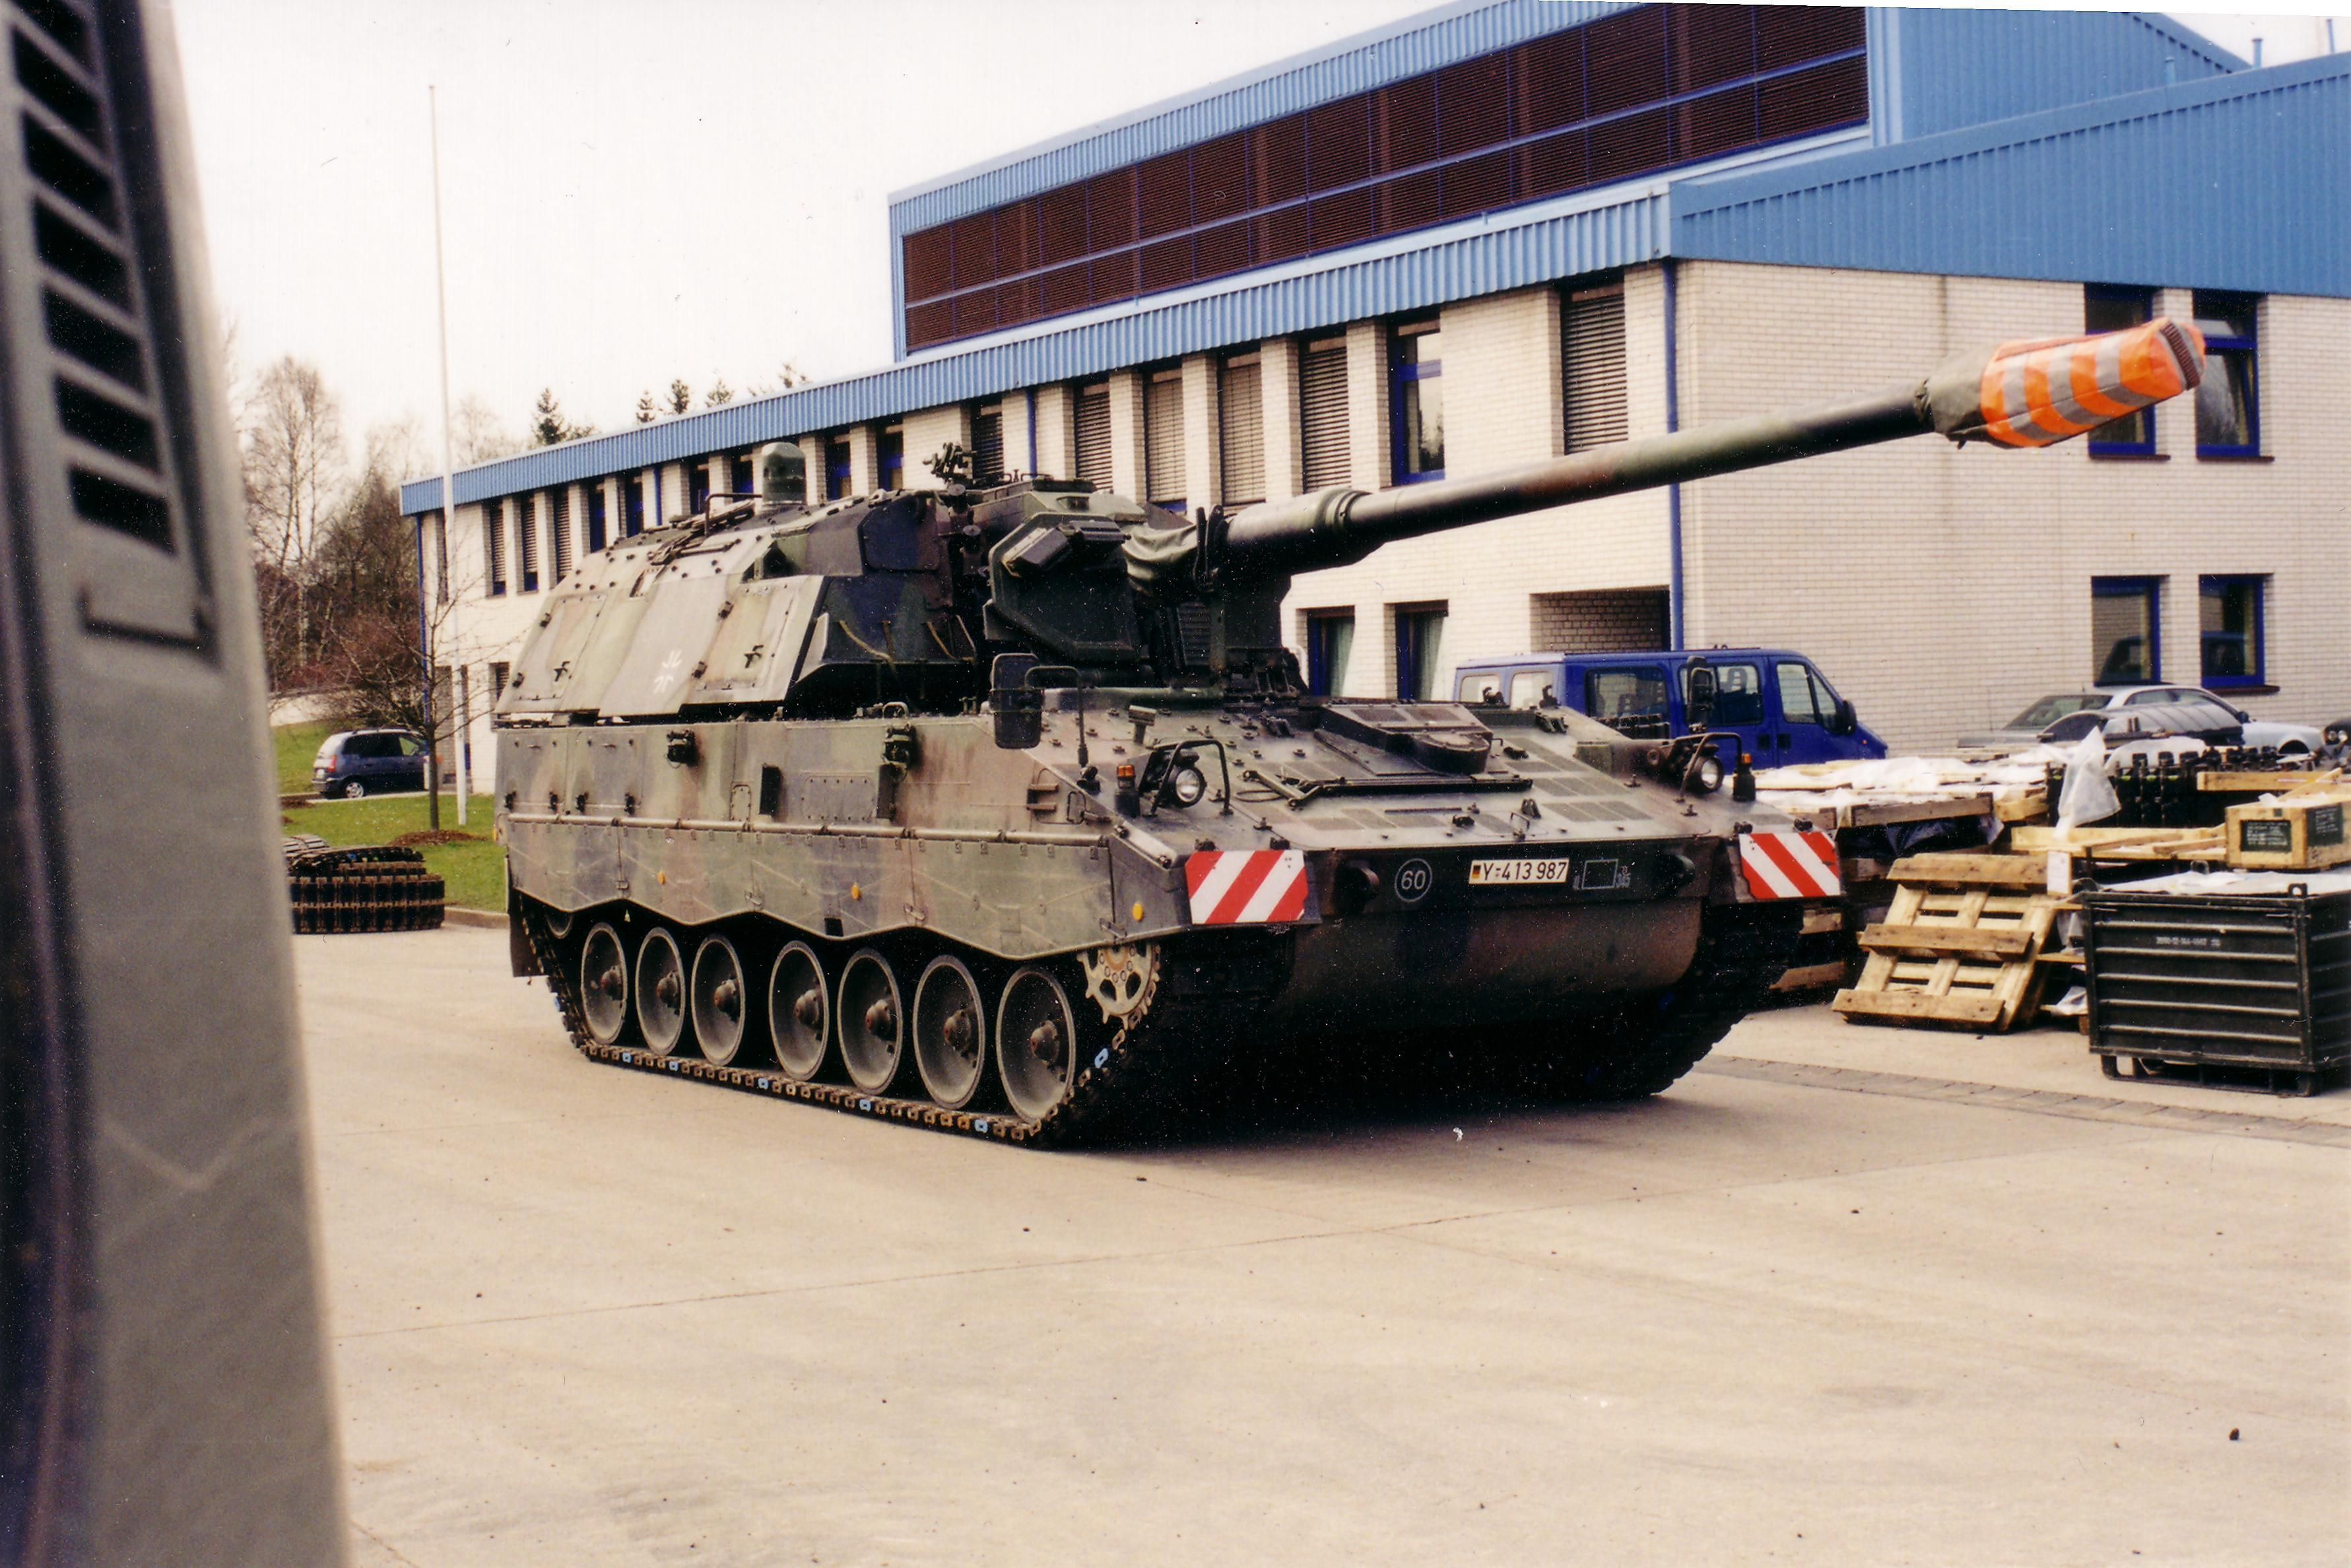 Self-propelled howitzer PzH 2000 of the German Army